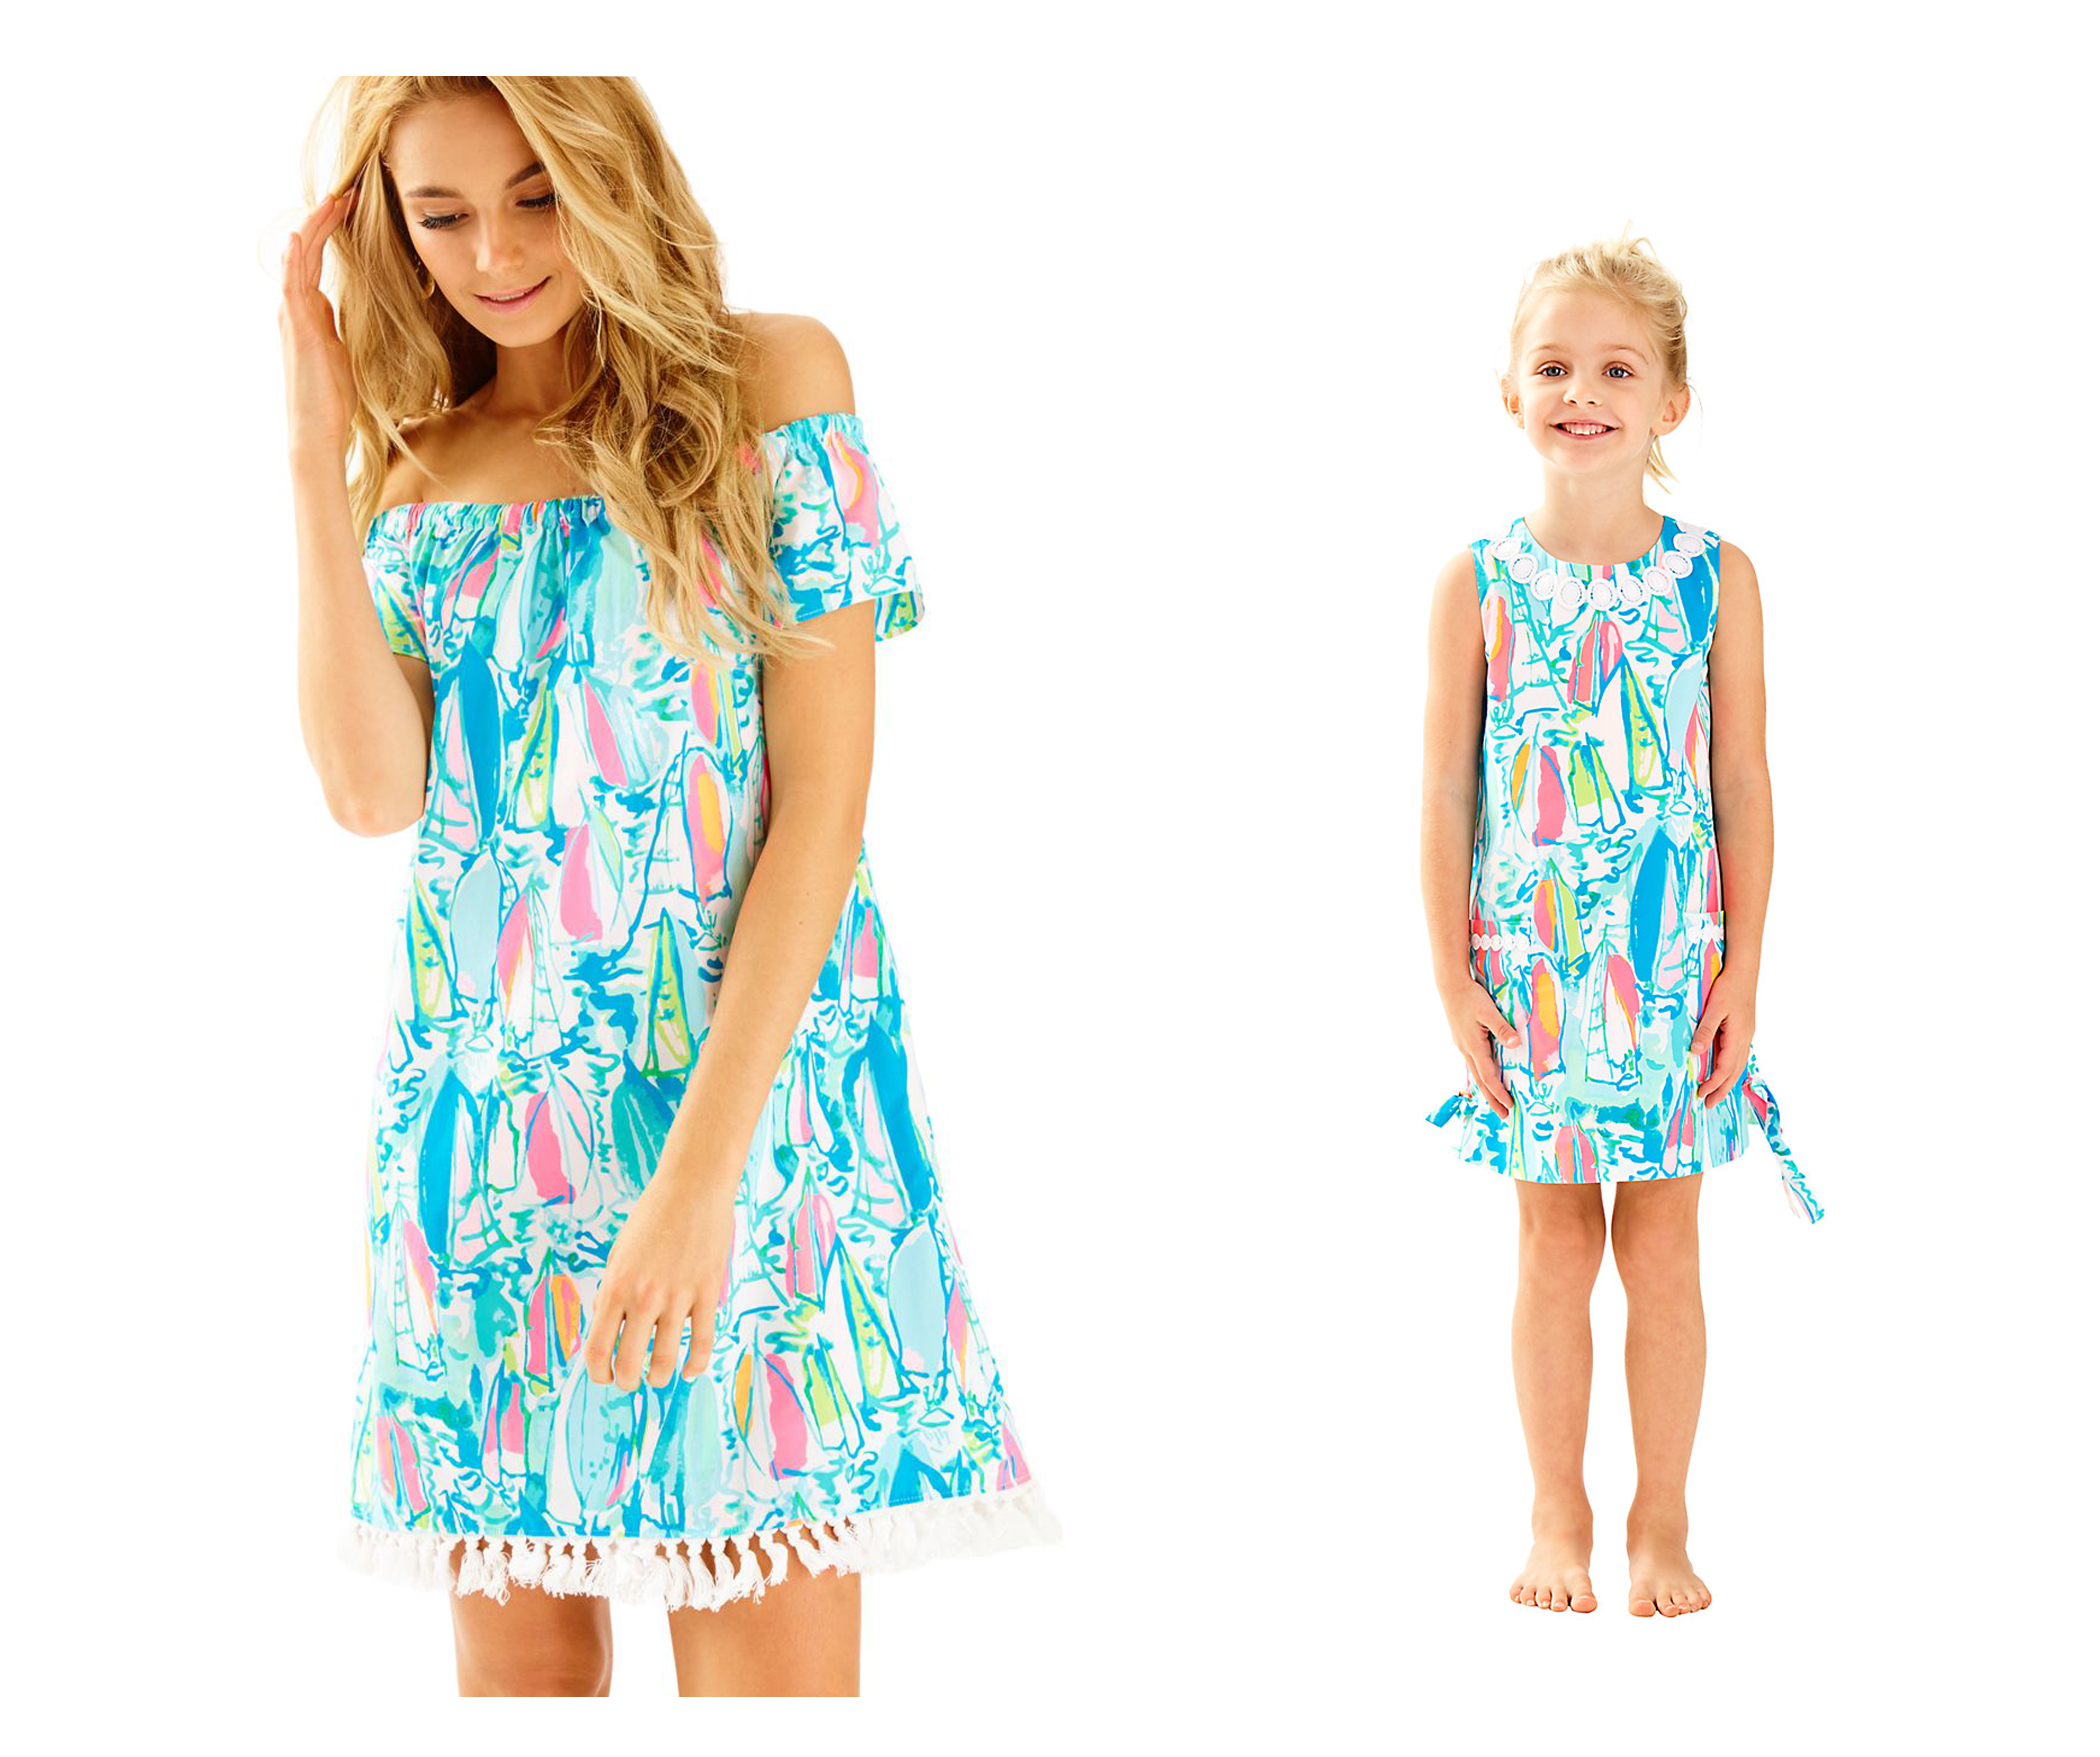 8fa1748ced05 14 Cutest Mom-Daughter Outfits – SheKnows